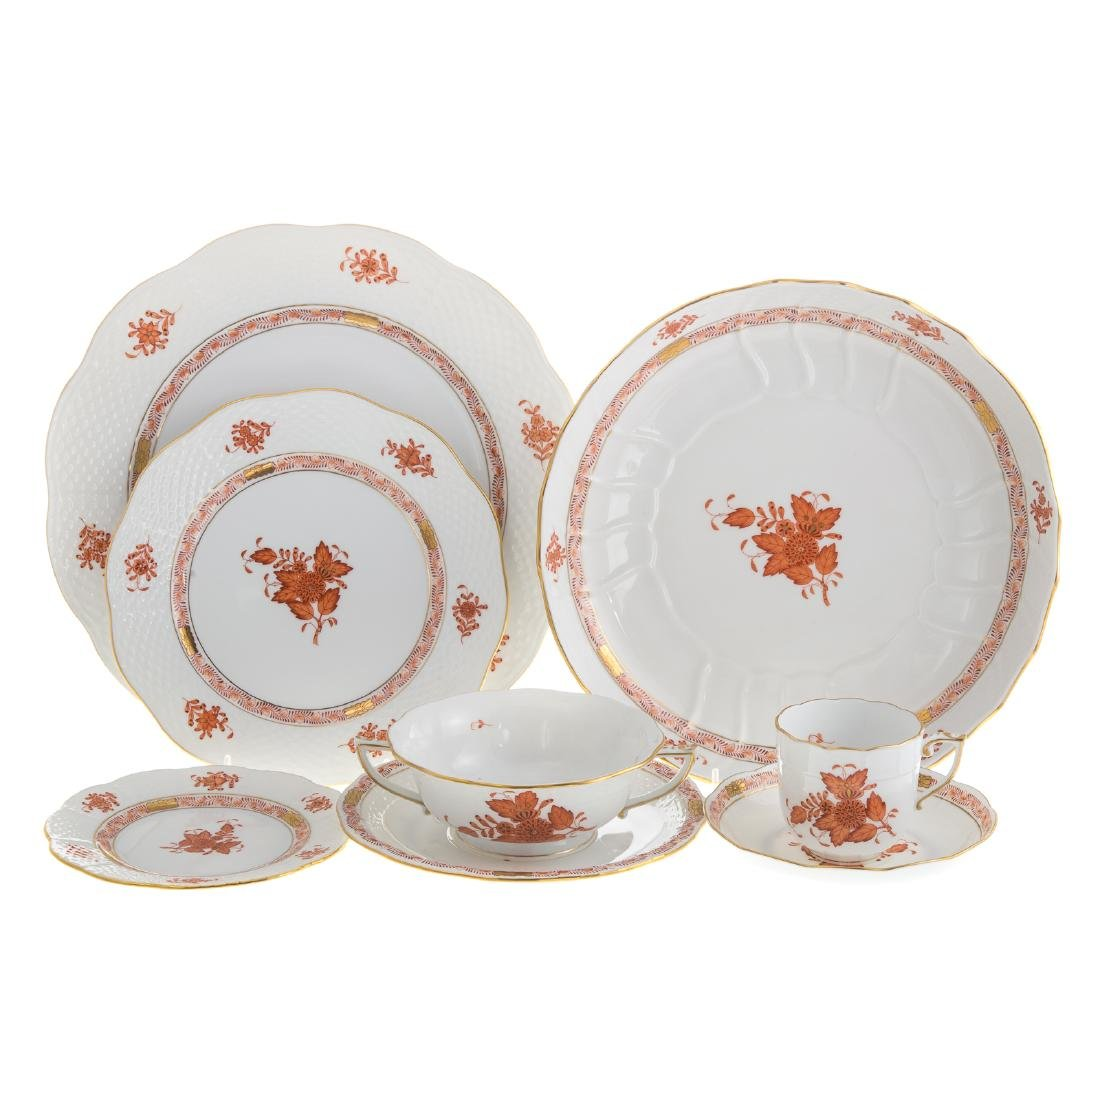 Herend china partial dinner service